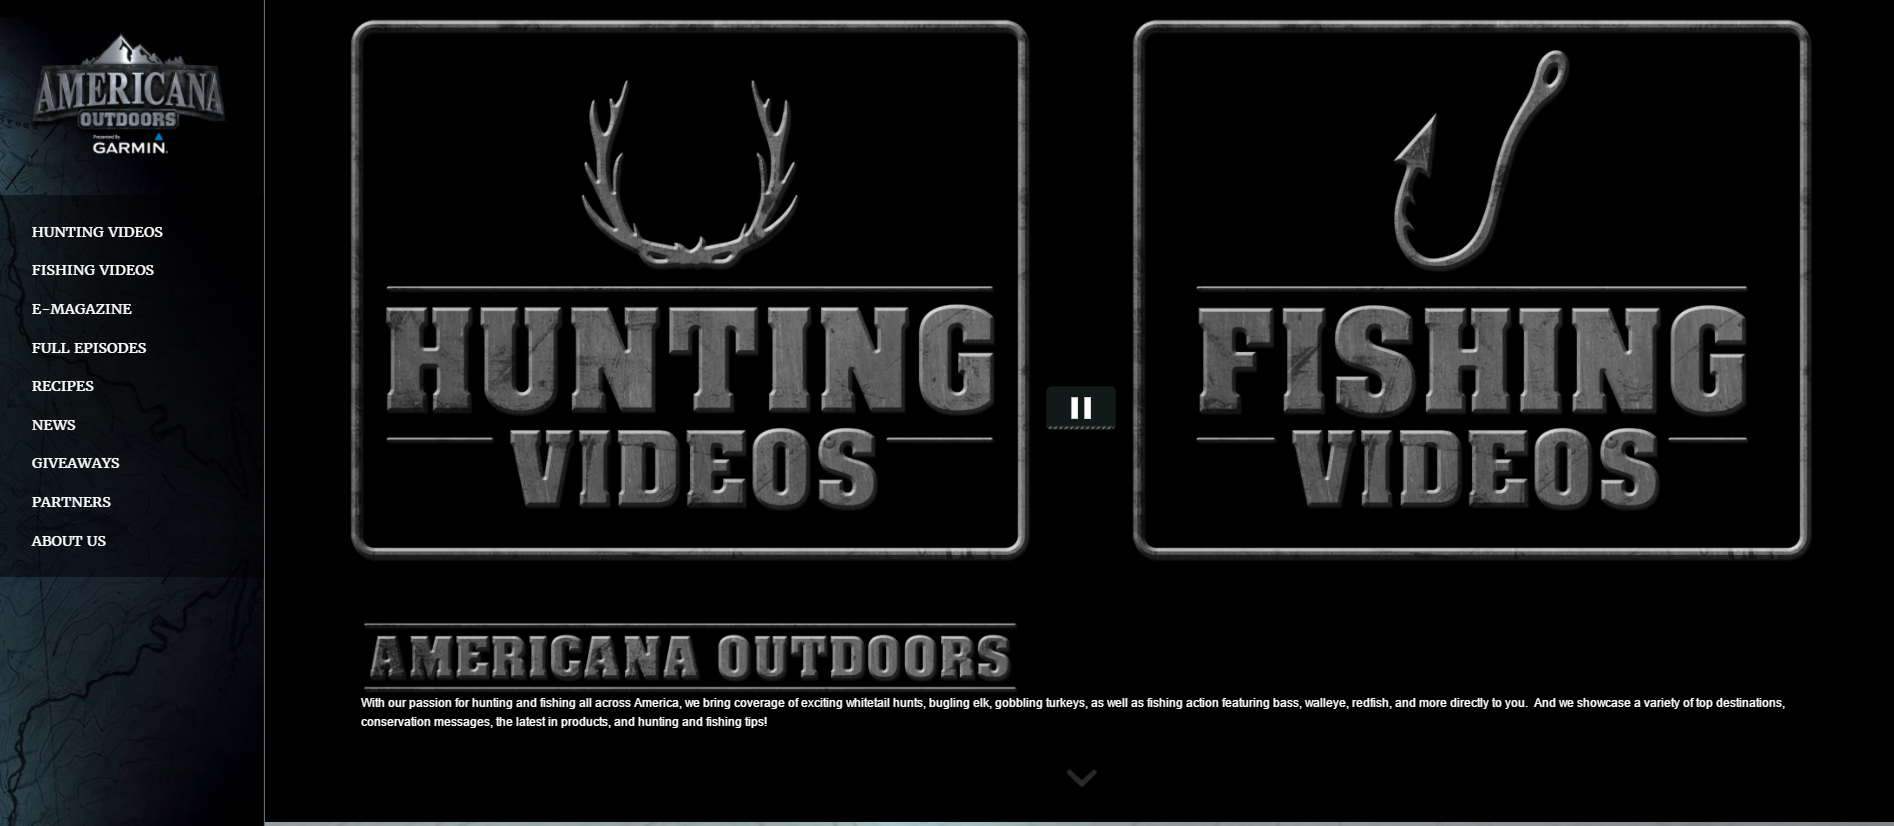 Hunting Videos and Fishing Videos | Americana Outdoors